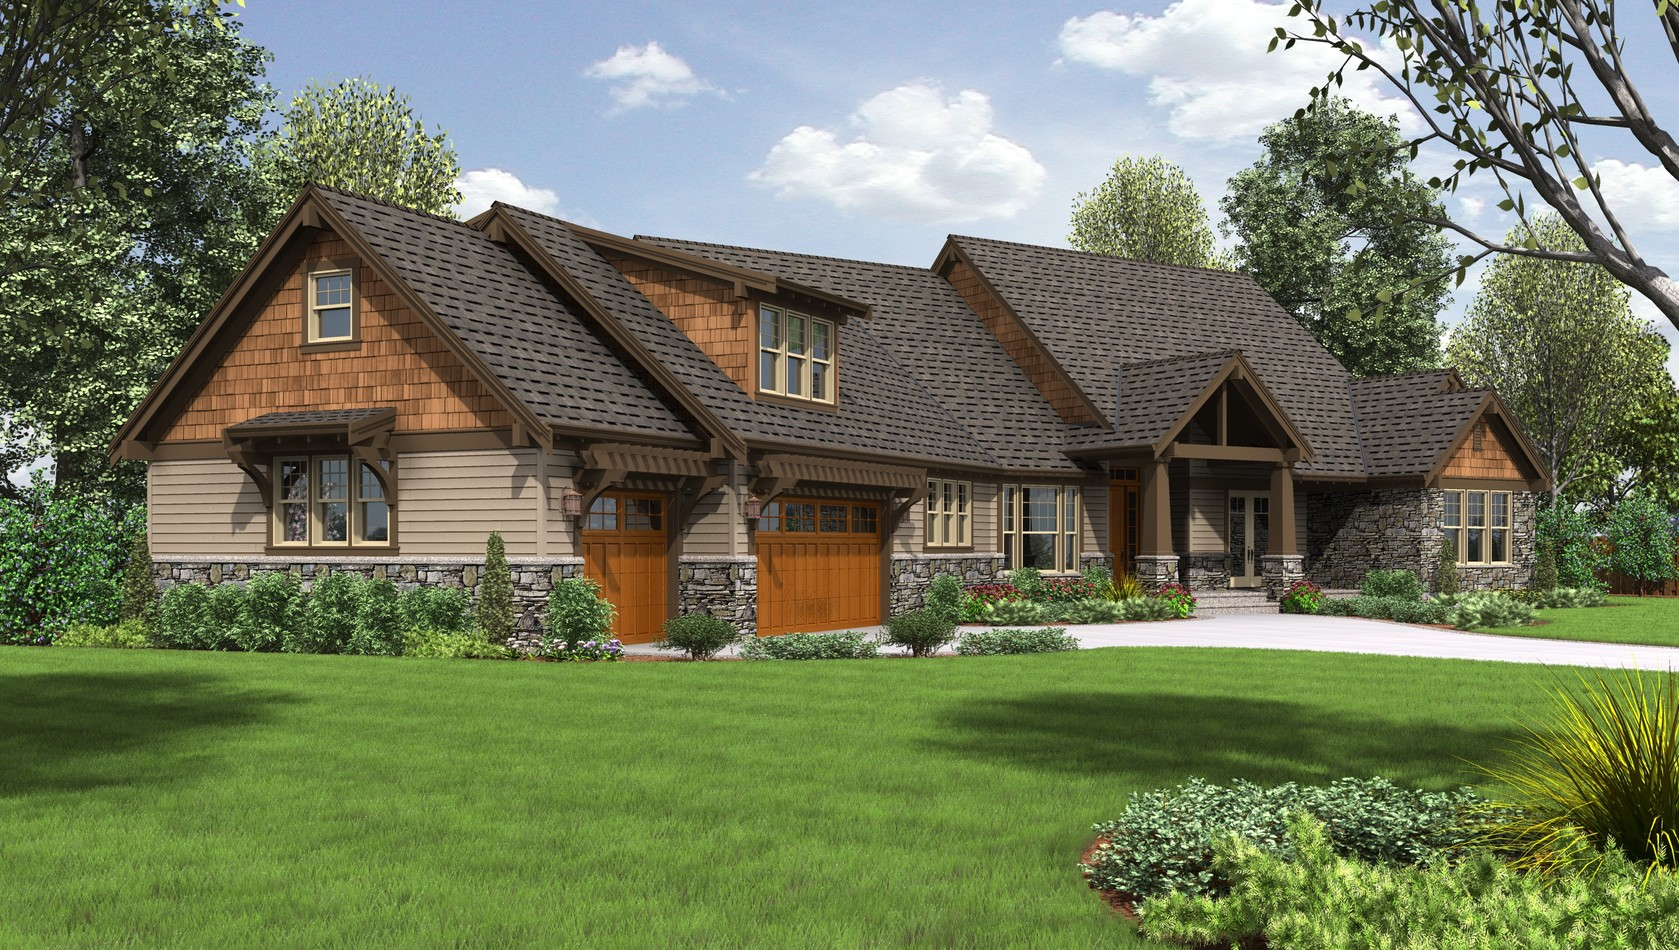 Main image for house plan 2471: The Braecroft